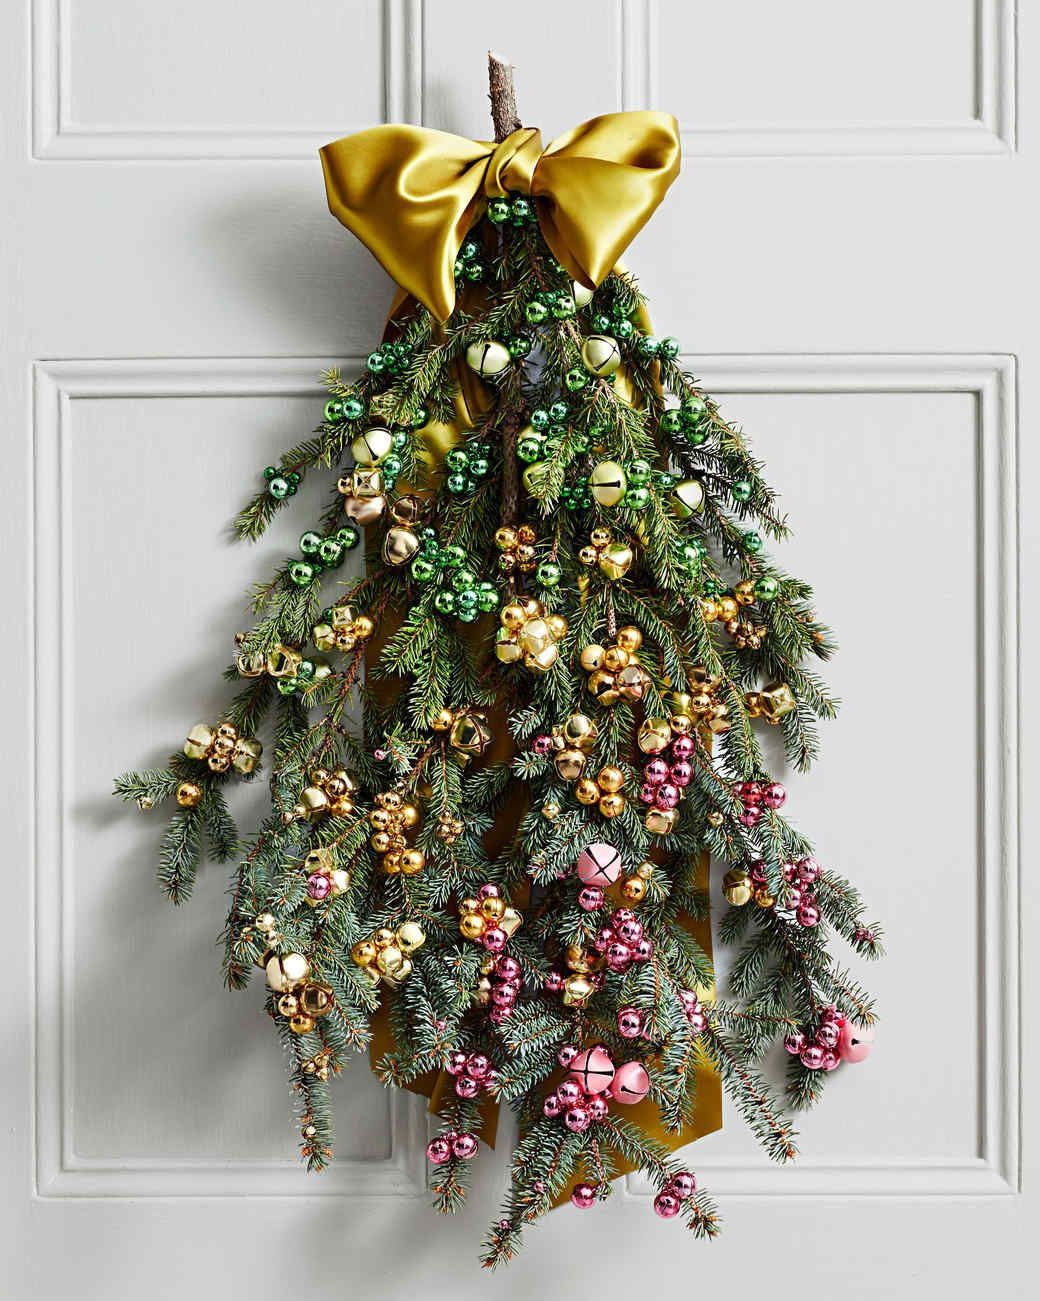 Christmas Bell Decoration Ideas Ombre Jingle Bell Door Greenery  Ombre Jingle Bells And Greenery